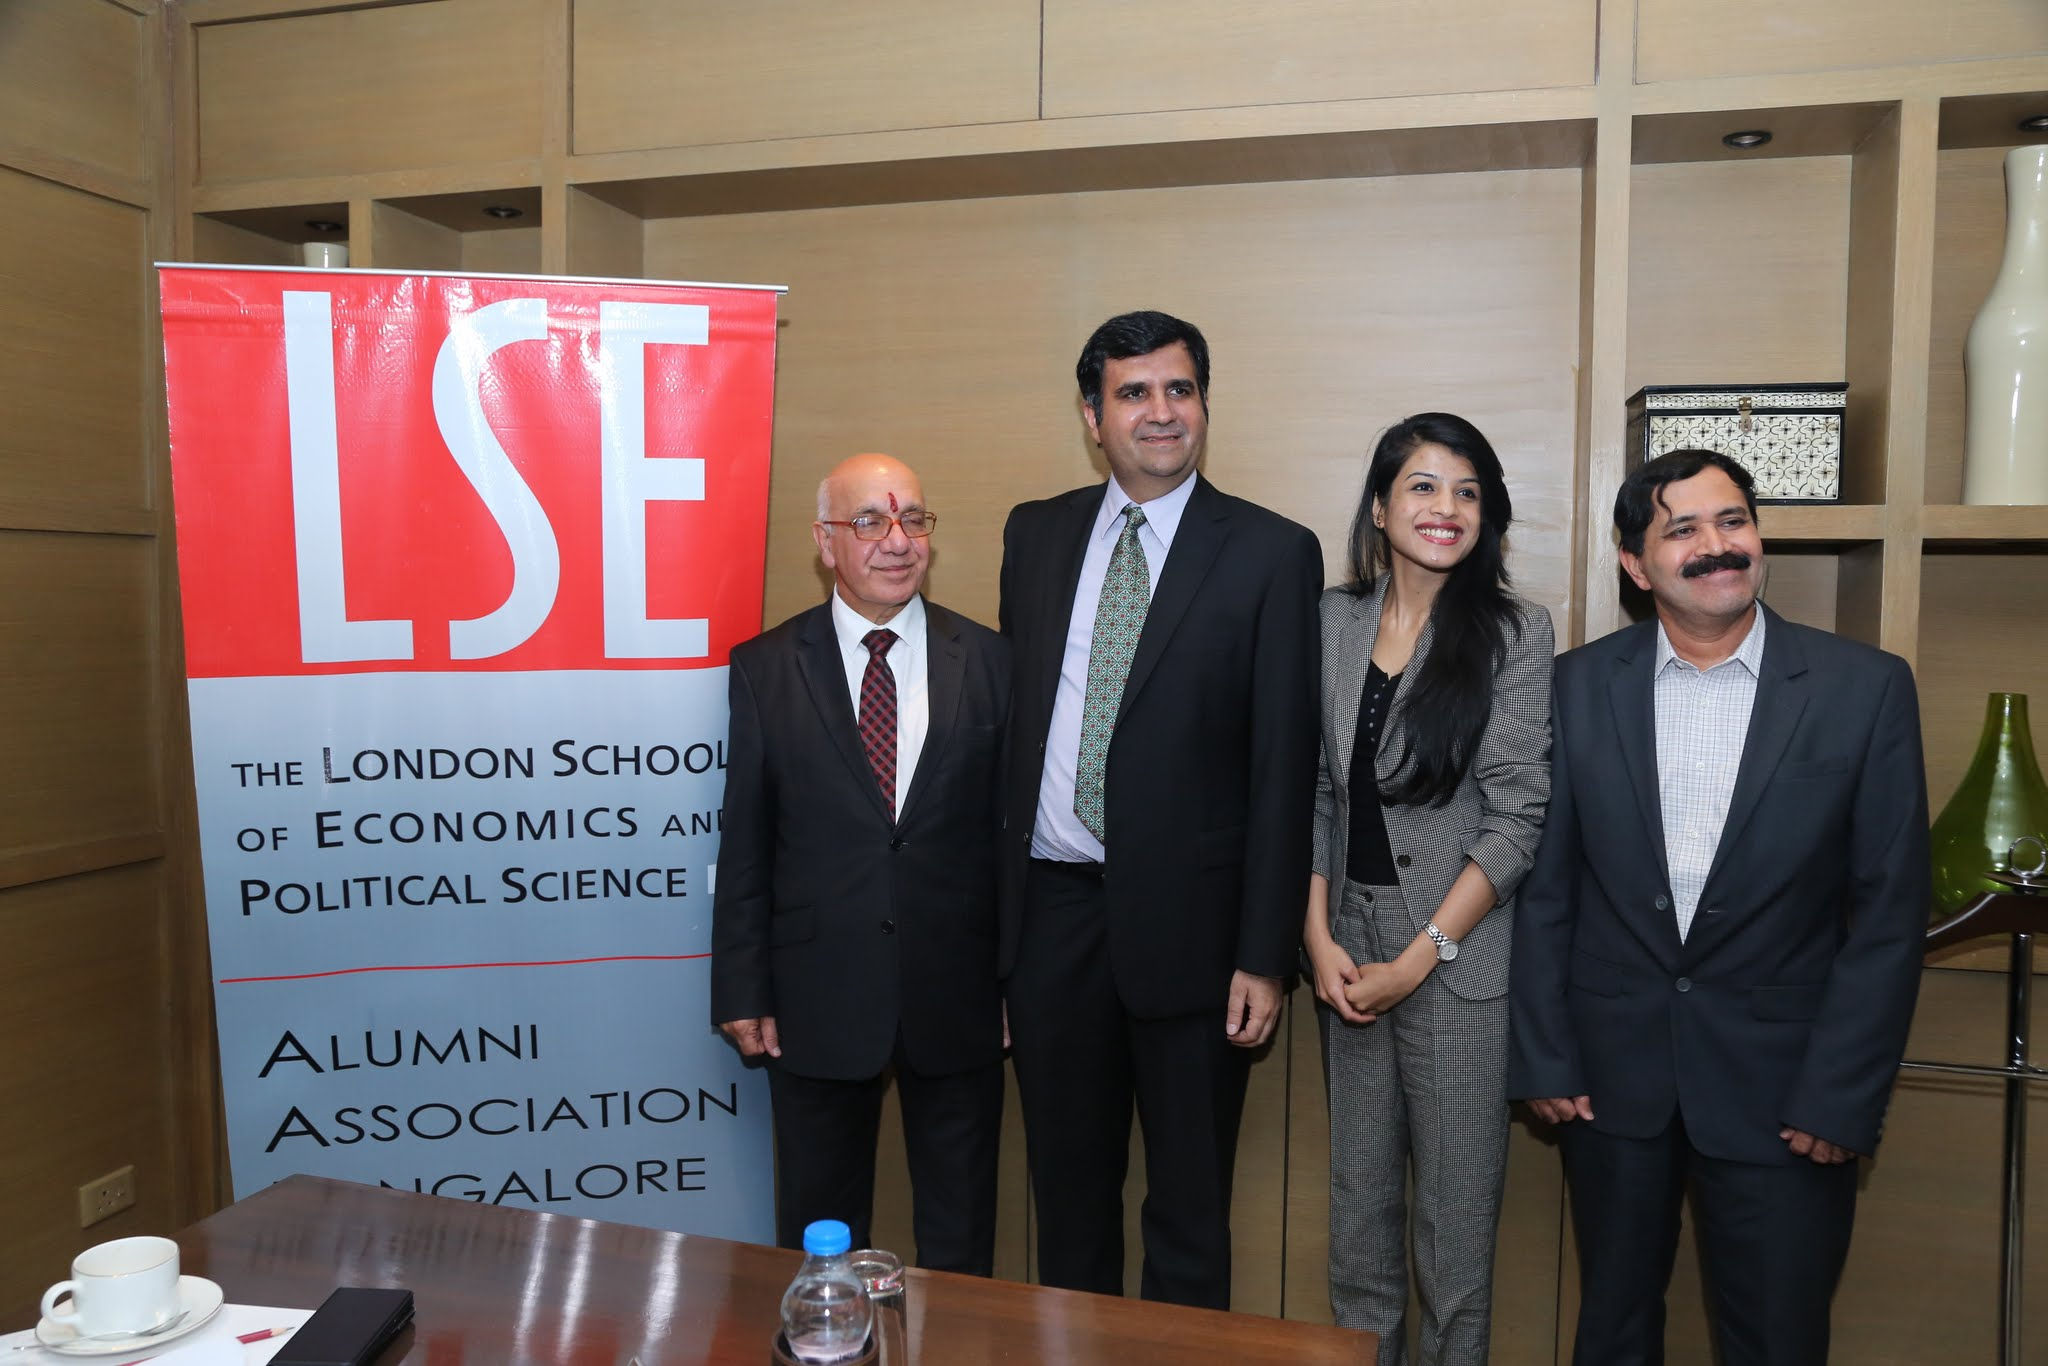 With LSE Alumnia assn Bangalore